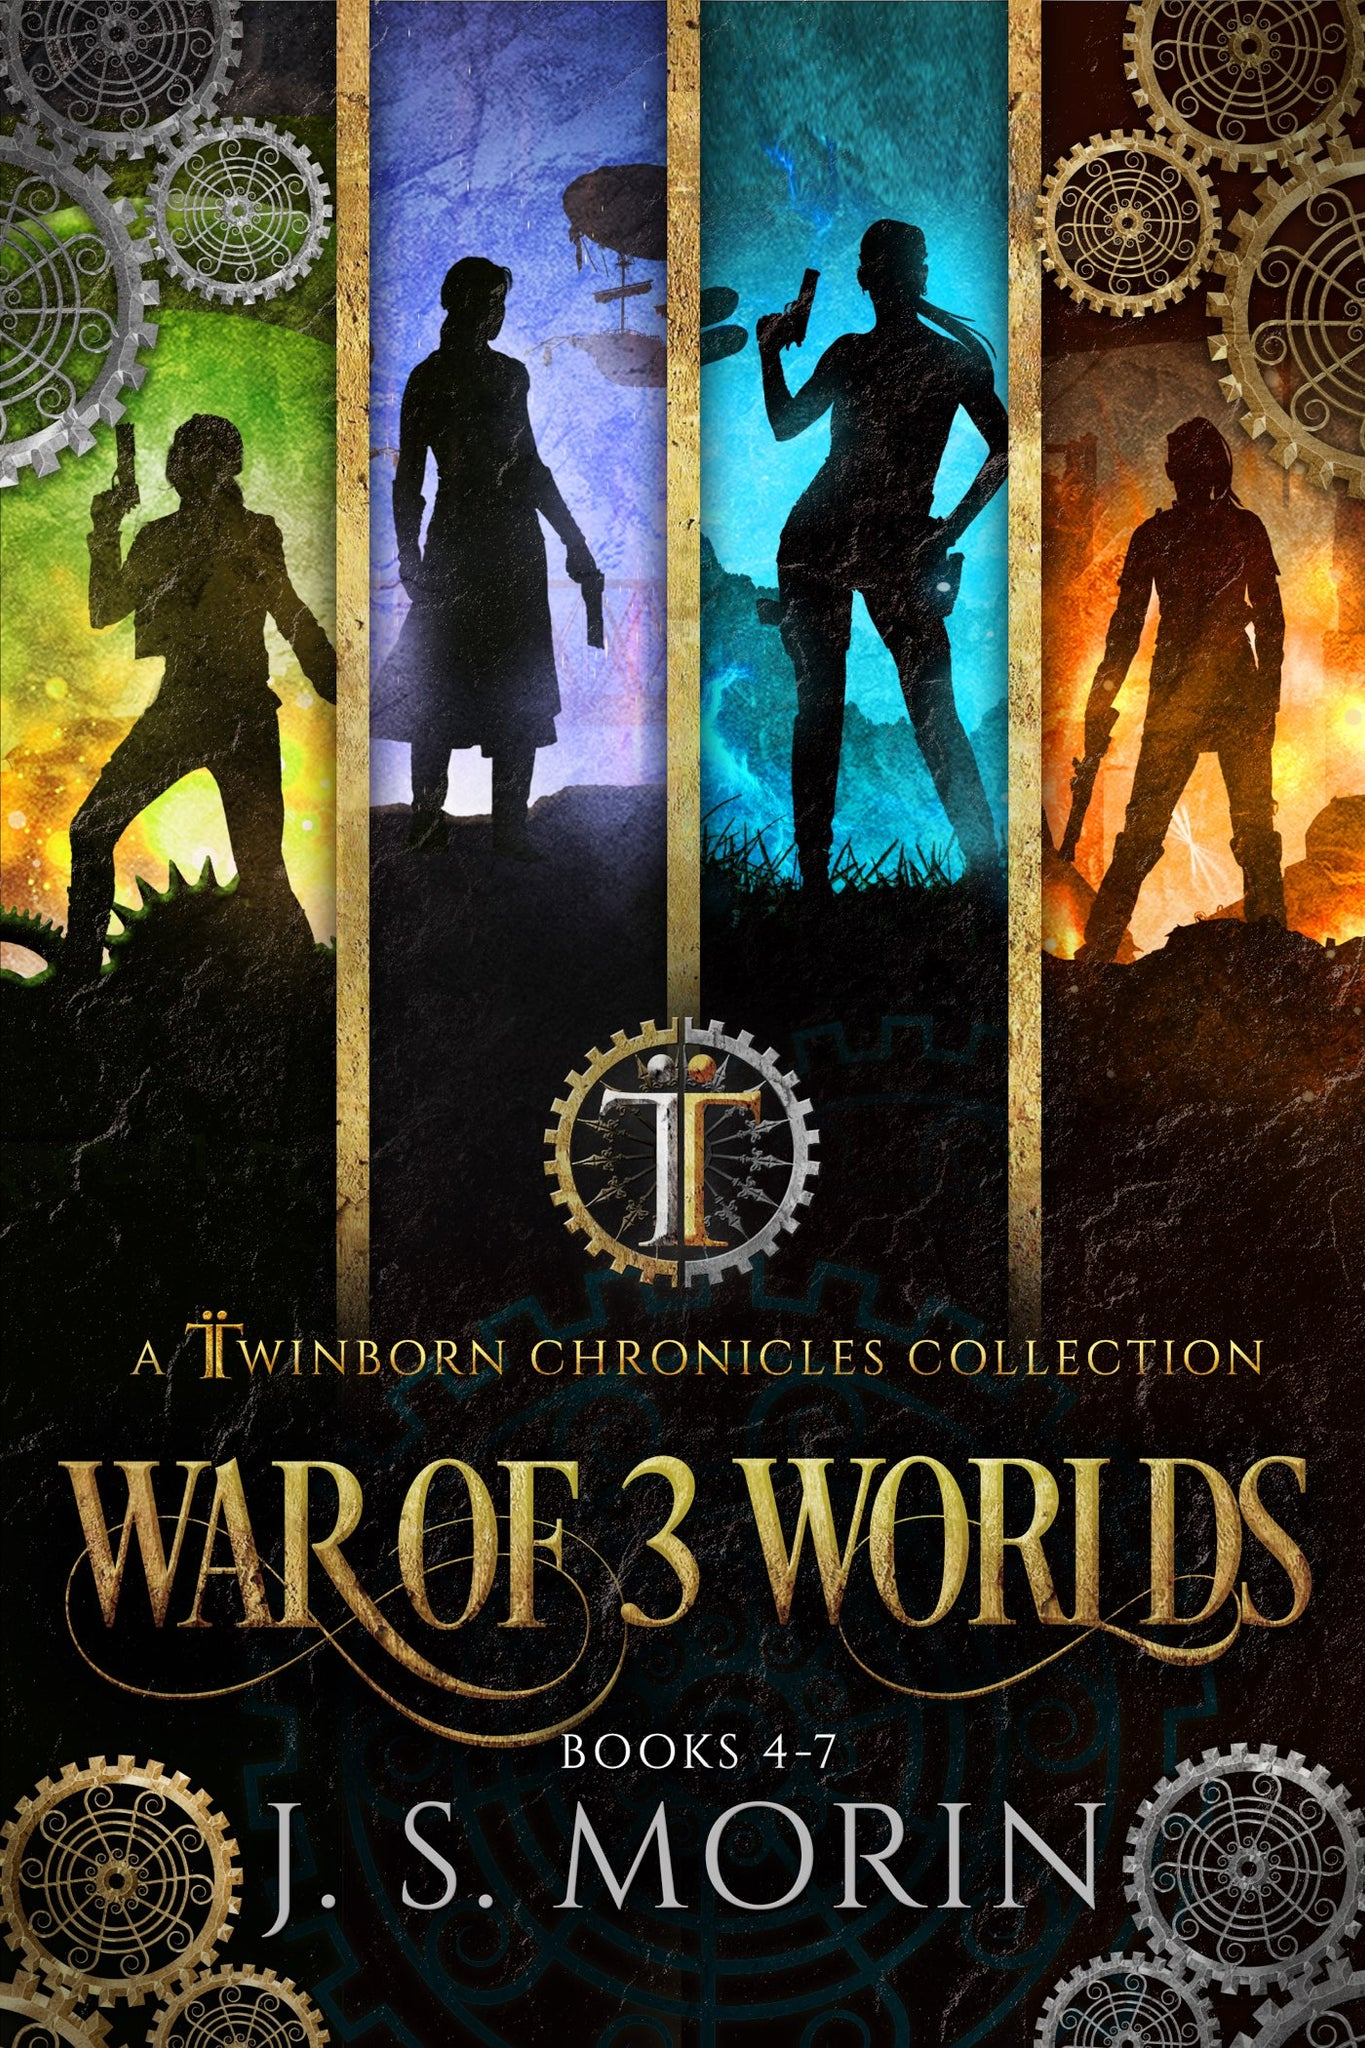 War of 3 Worlds, Twinborn Chronicles Books 4-7